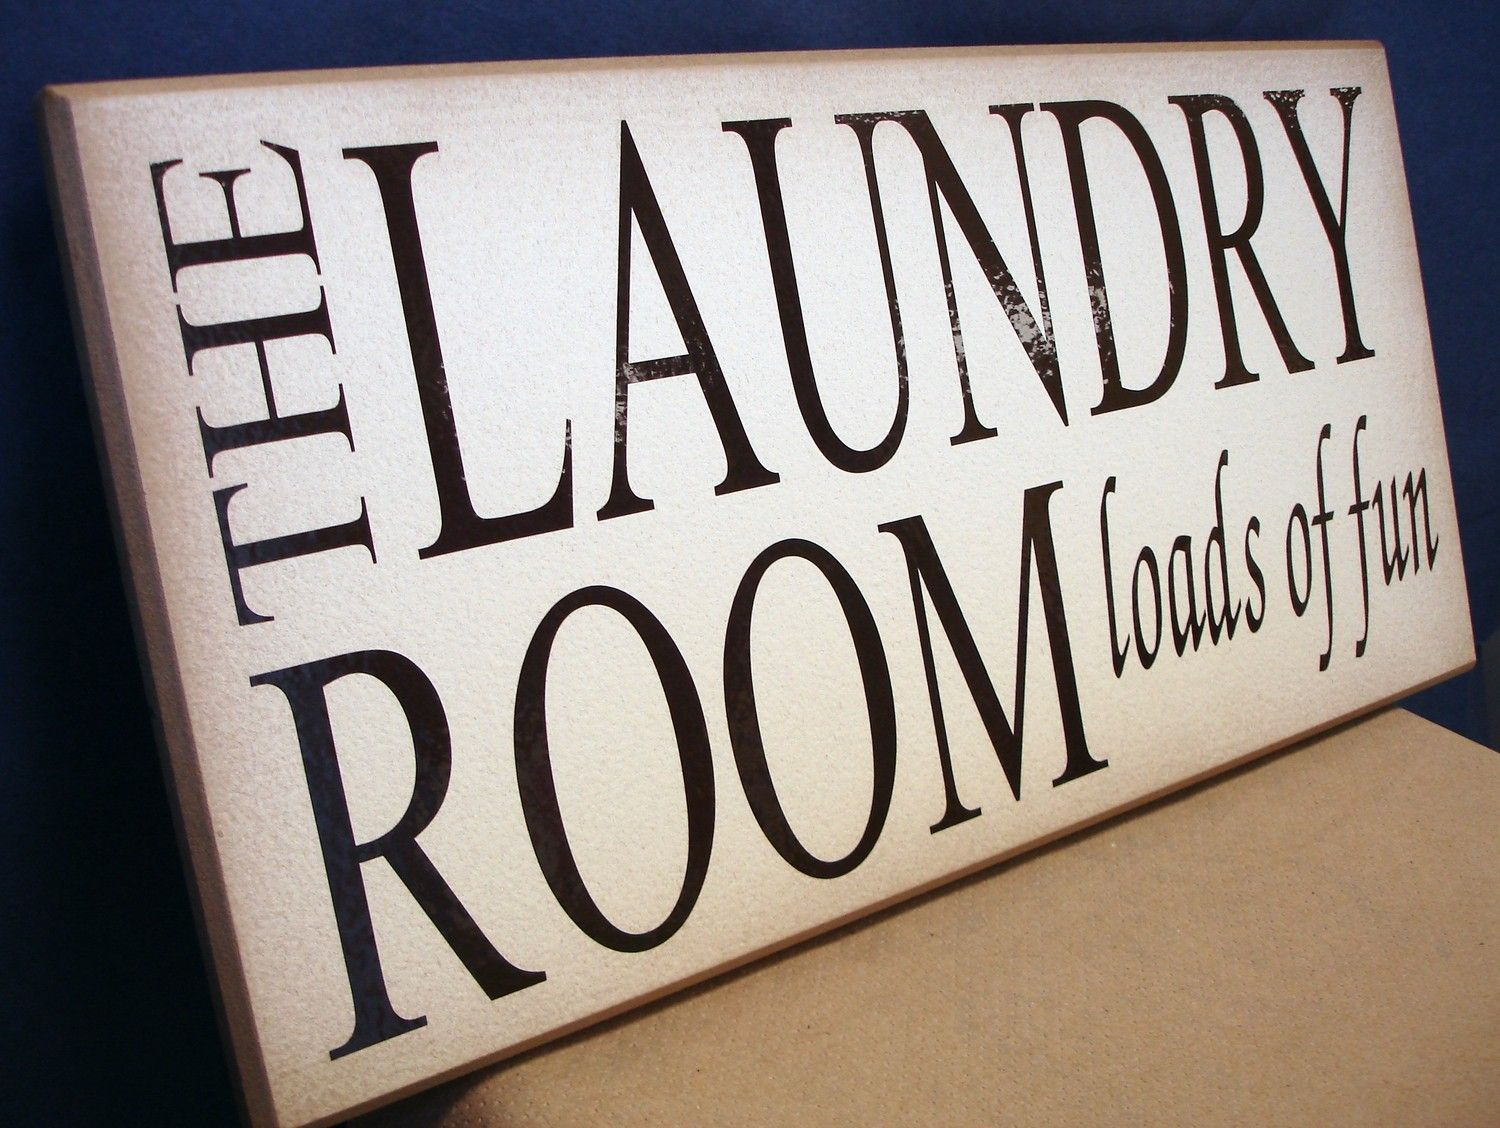 The Laundry Room Loads Of Fun Sign The Laundry Room  Loads Of Fun$18.00 Via Etsy Parsons Green